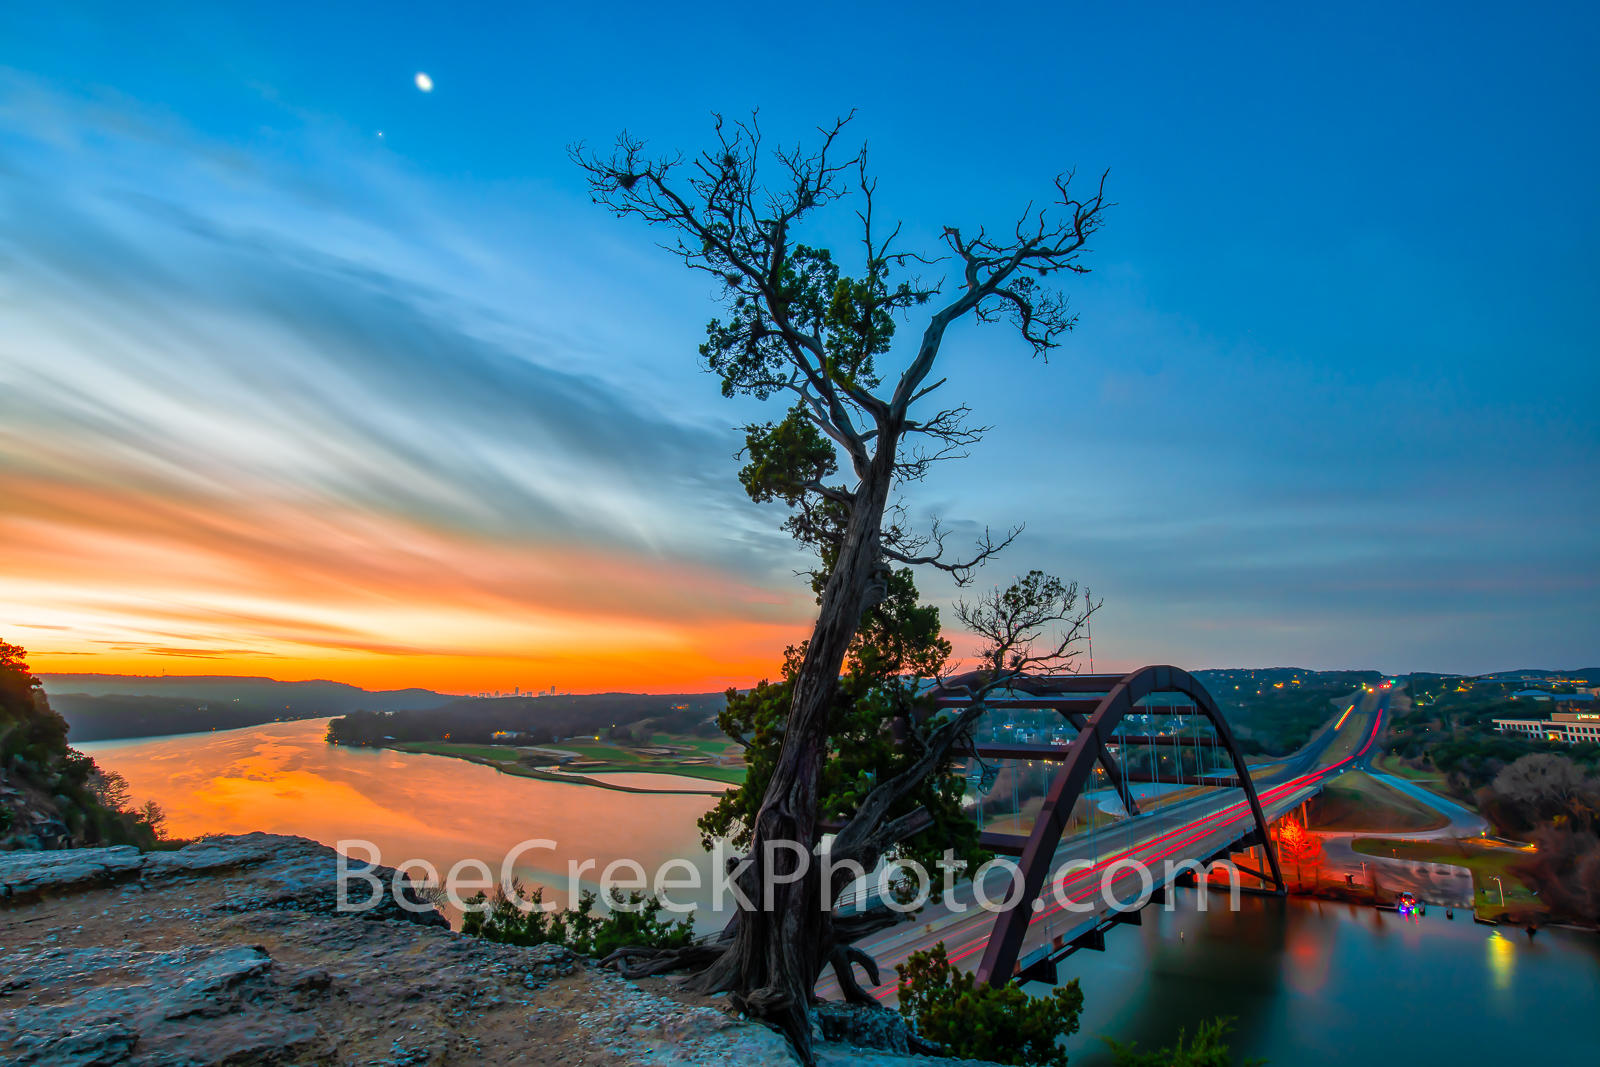 Sunrise at Austin 360 Bridge,sunrise, 360 bridge, Pennybacker bridge, Austin Pennybacker Bridge, Austin, Lake Austin,  sunrise glow, orange, landmark, tourist, photo, visitors, scenic, Texas Hill coun, photo